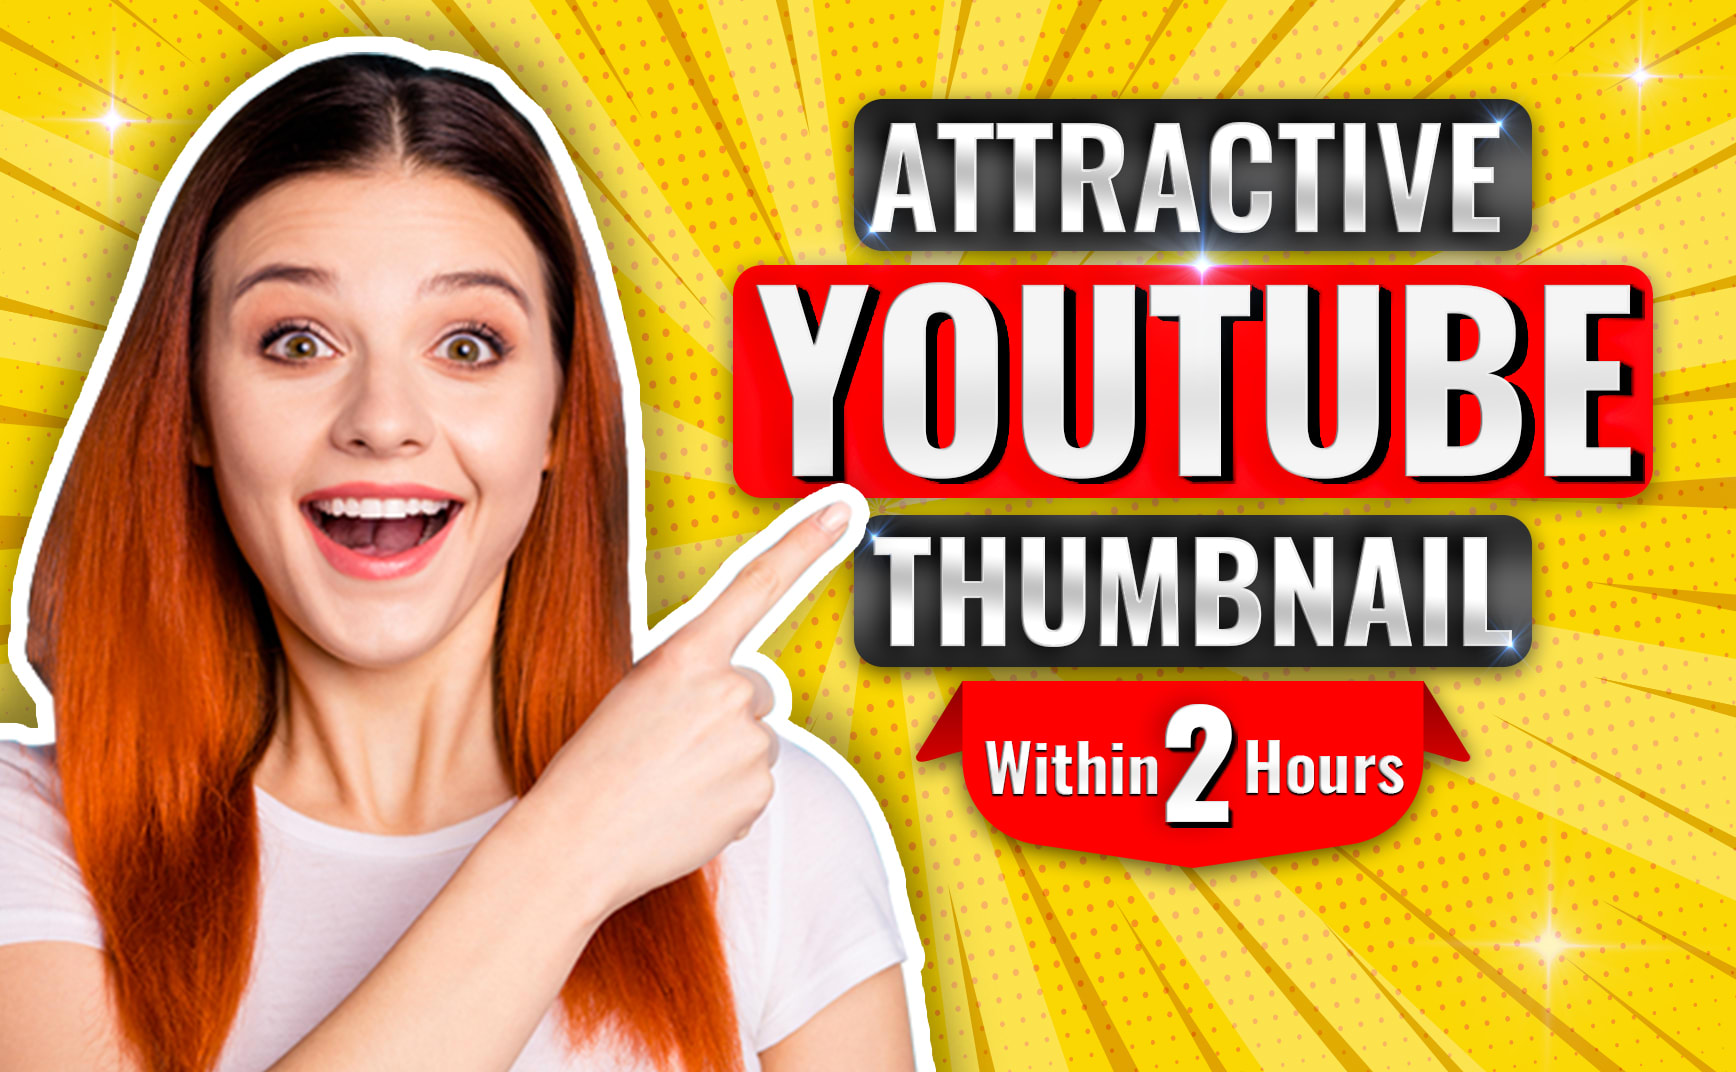 I will Design Attractive Clickbait YouTube Thumbnail For Viral